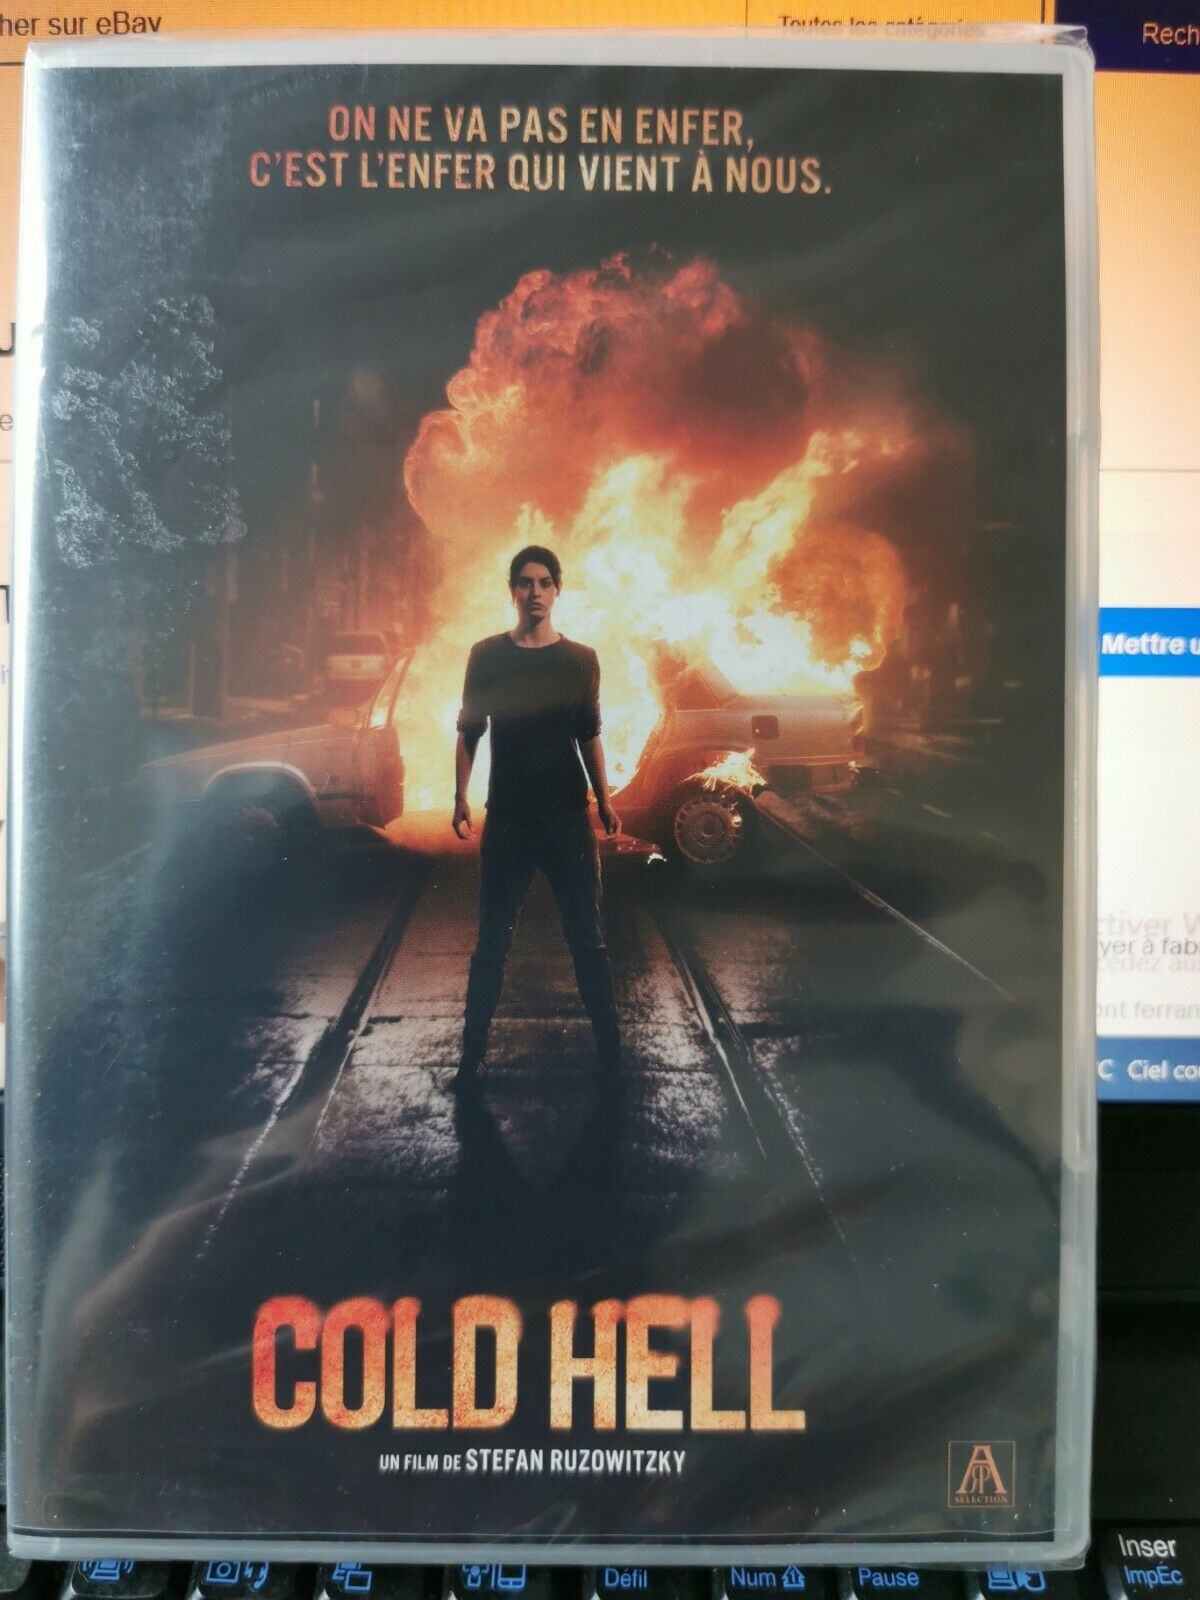 DVD COLD HELL FILM STEFAN RUZOWITZKY 2017 NEUF SOUS BLISTER